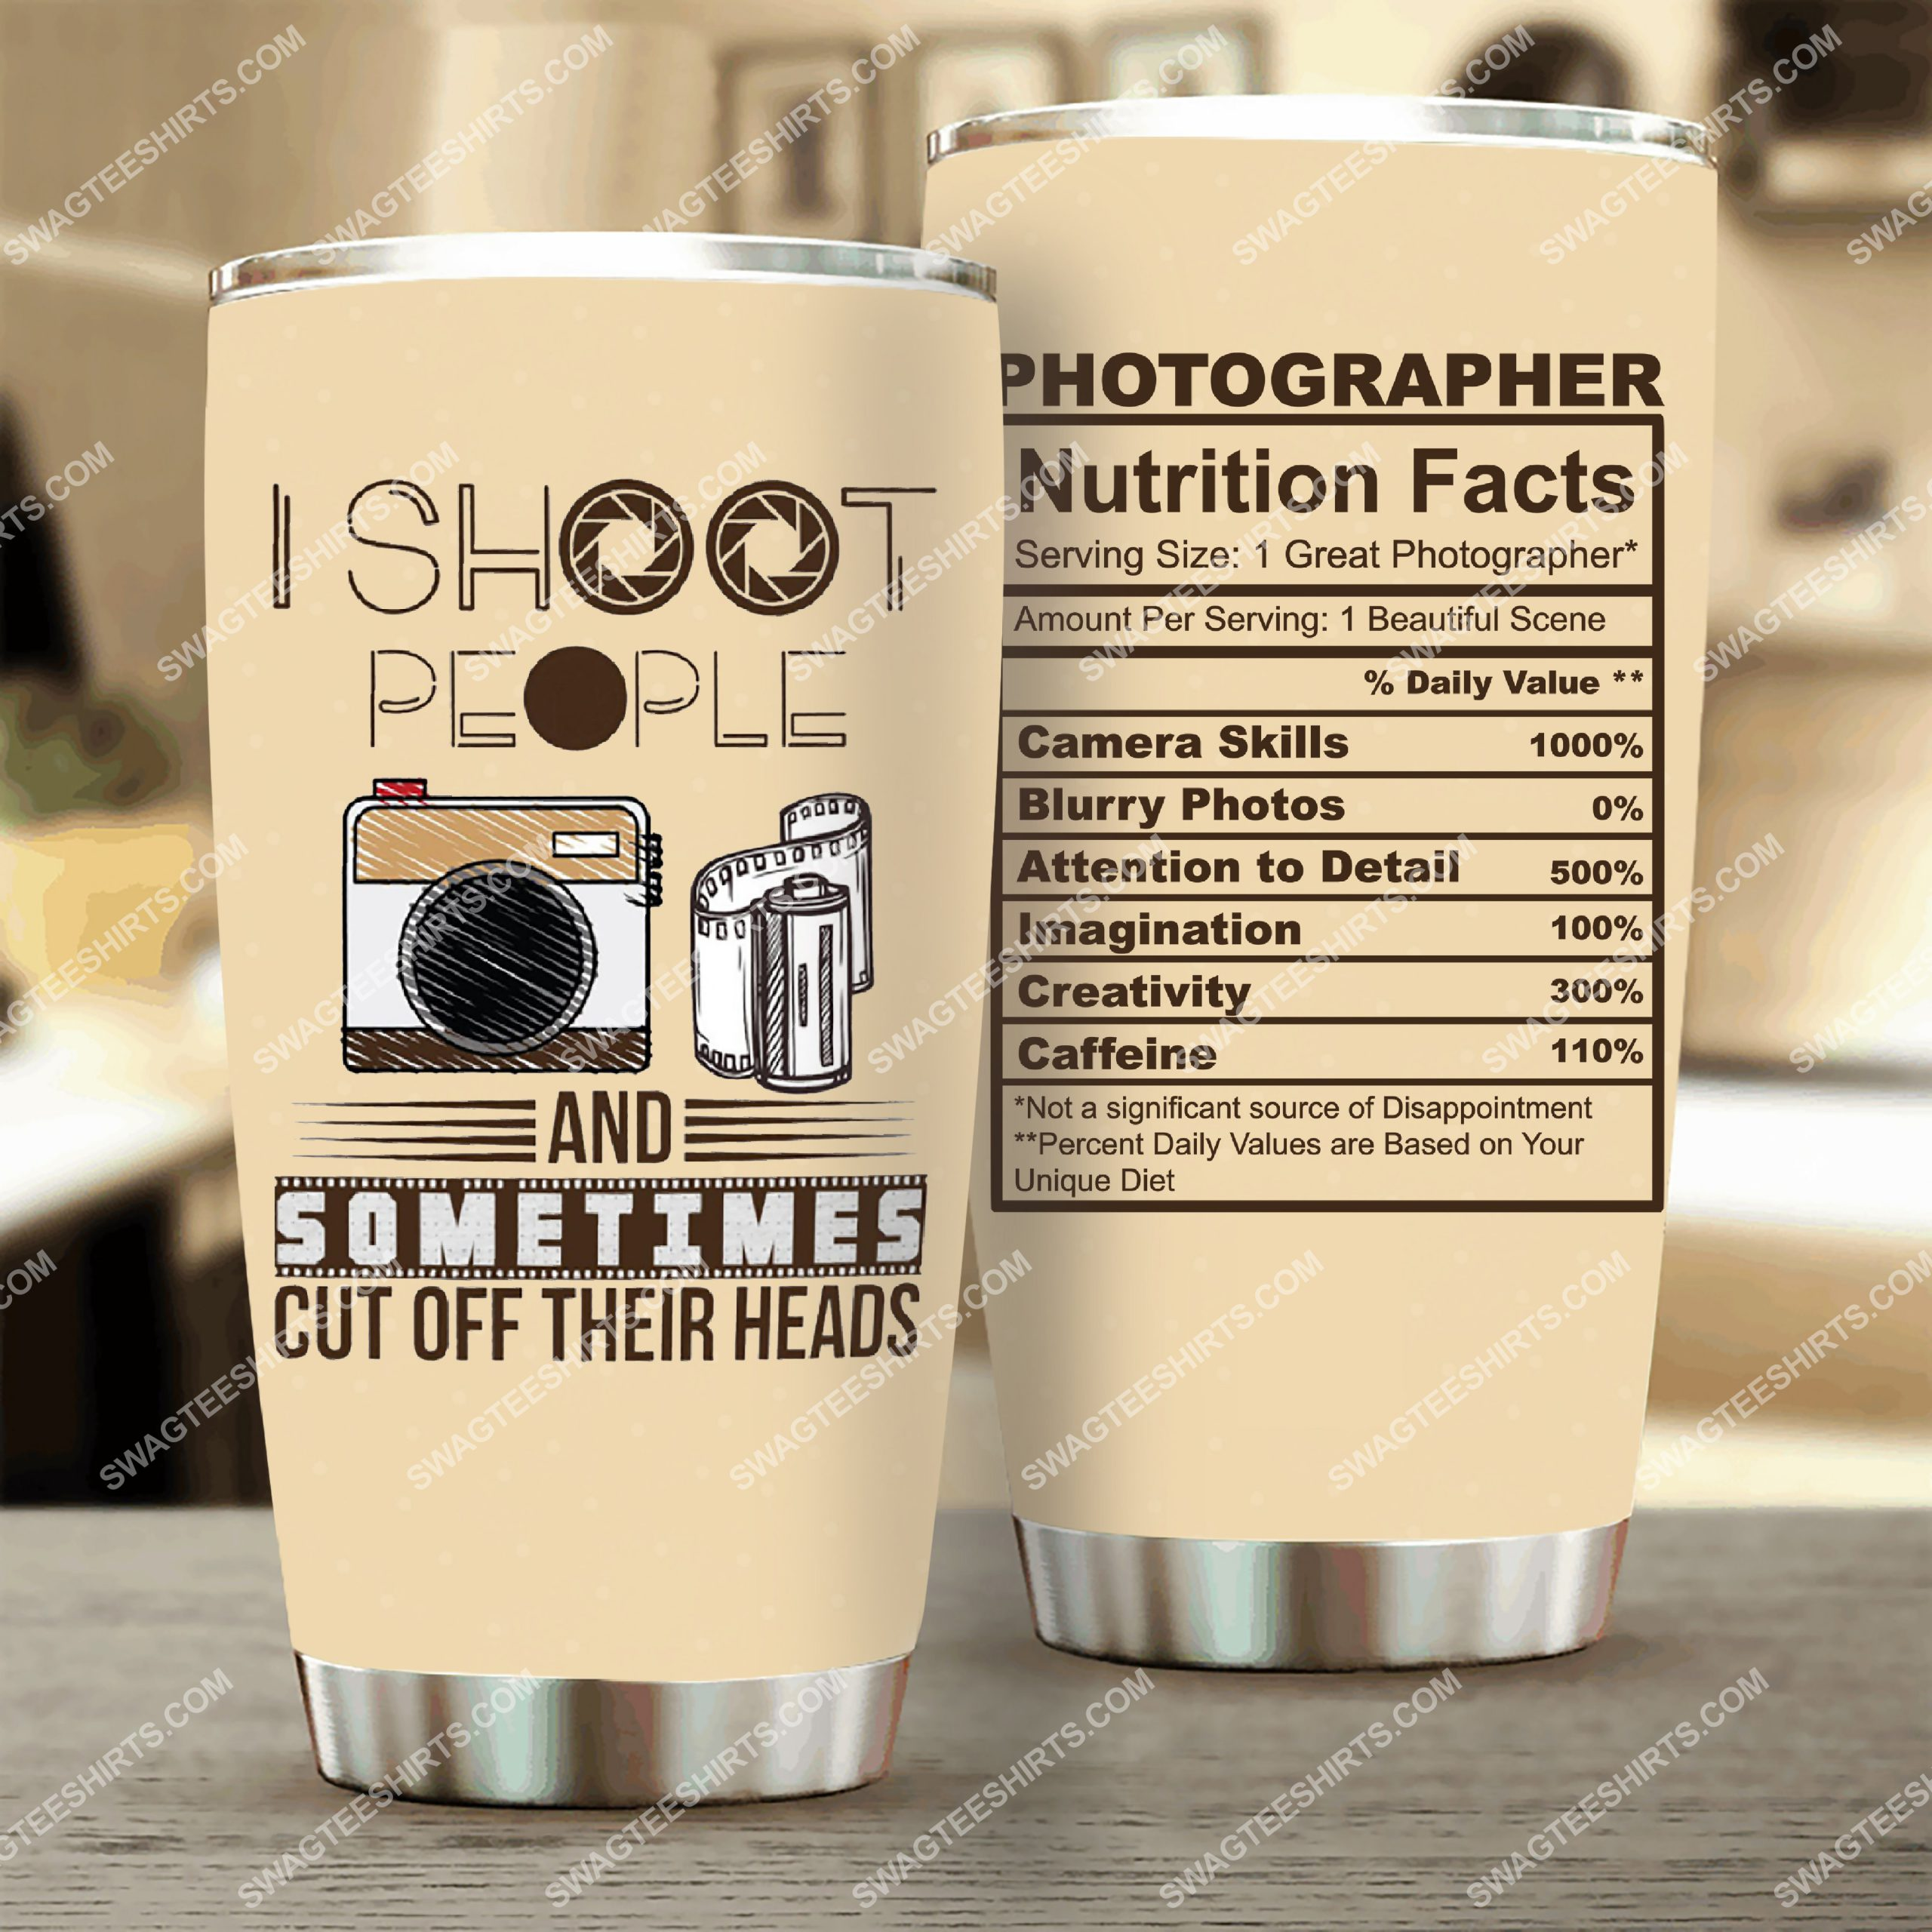 photographer i shoot people all over printed stainless steel tumbler 2(1) - Copy